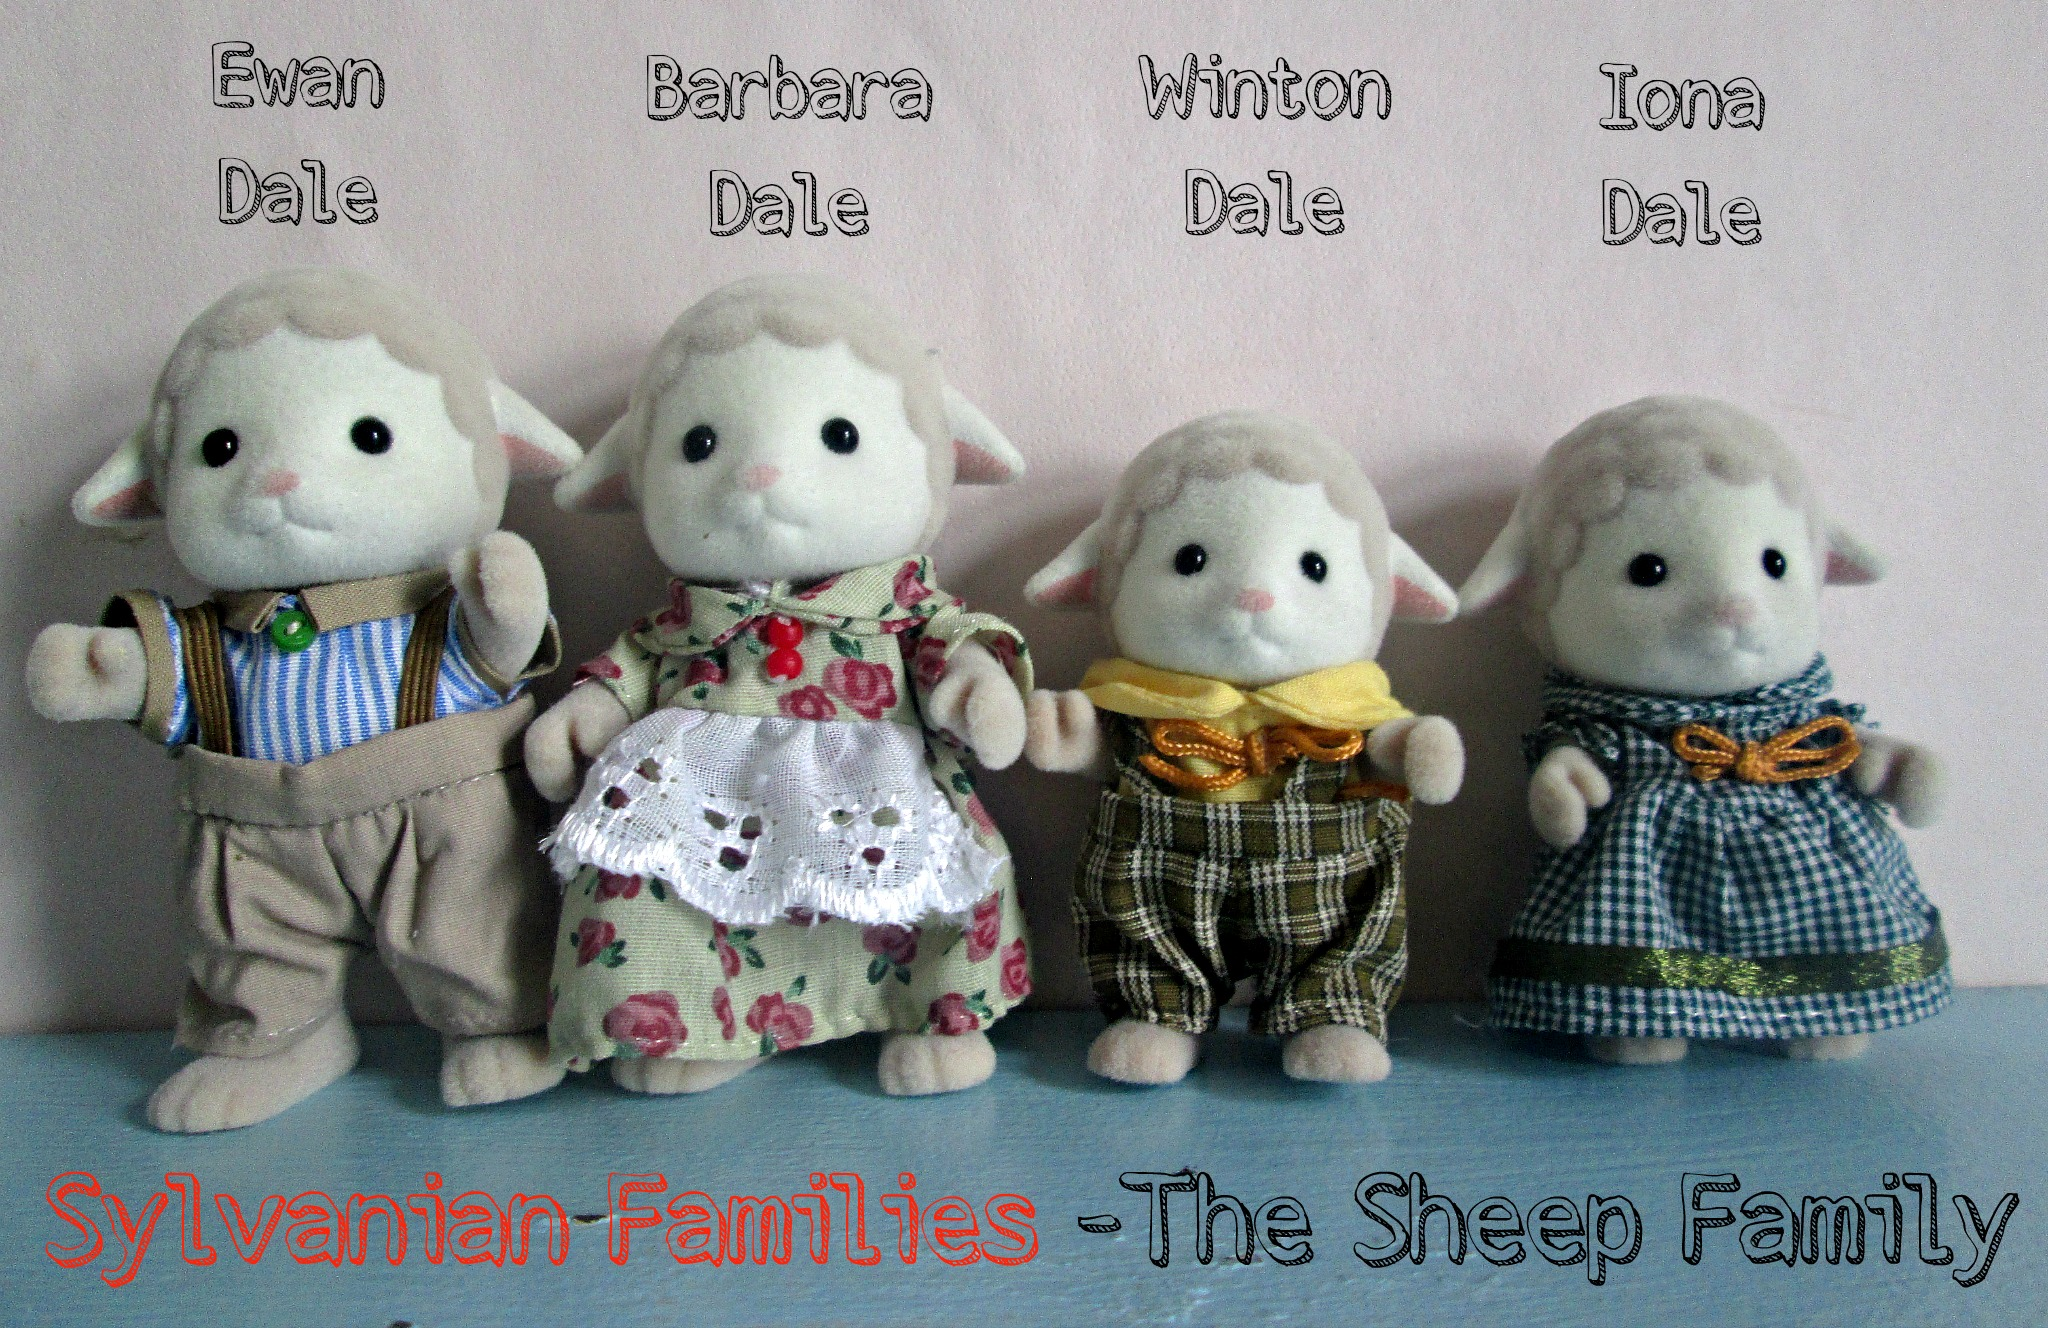 Sylvanian Families The Sheep Family